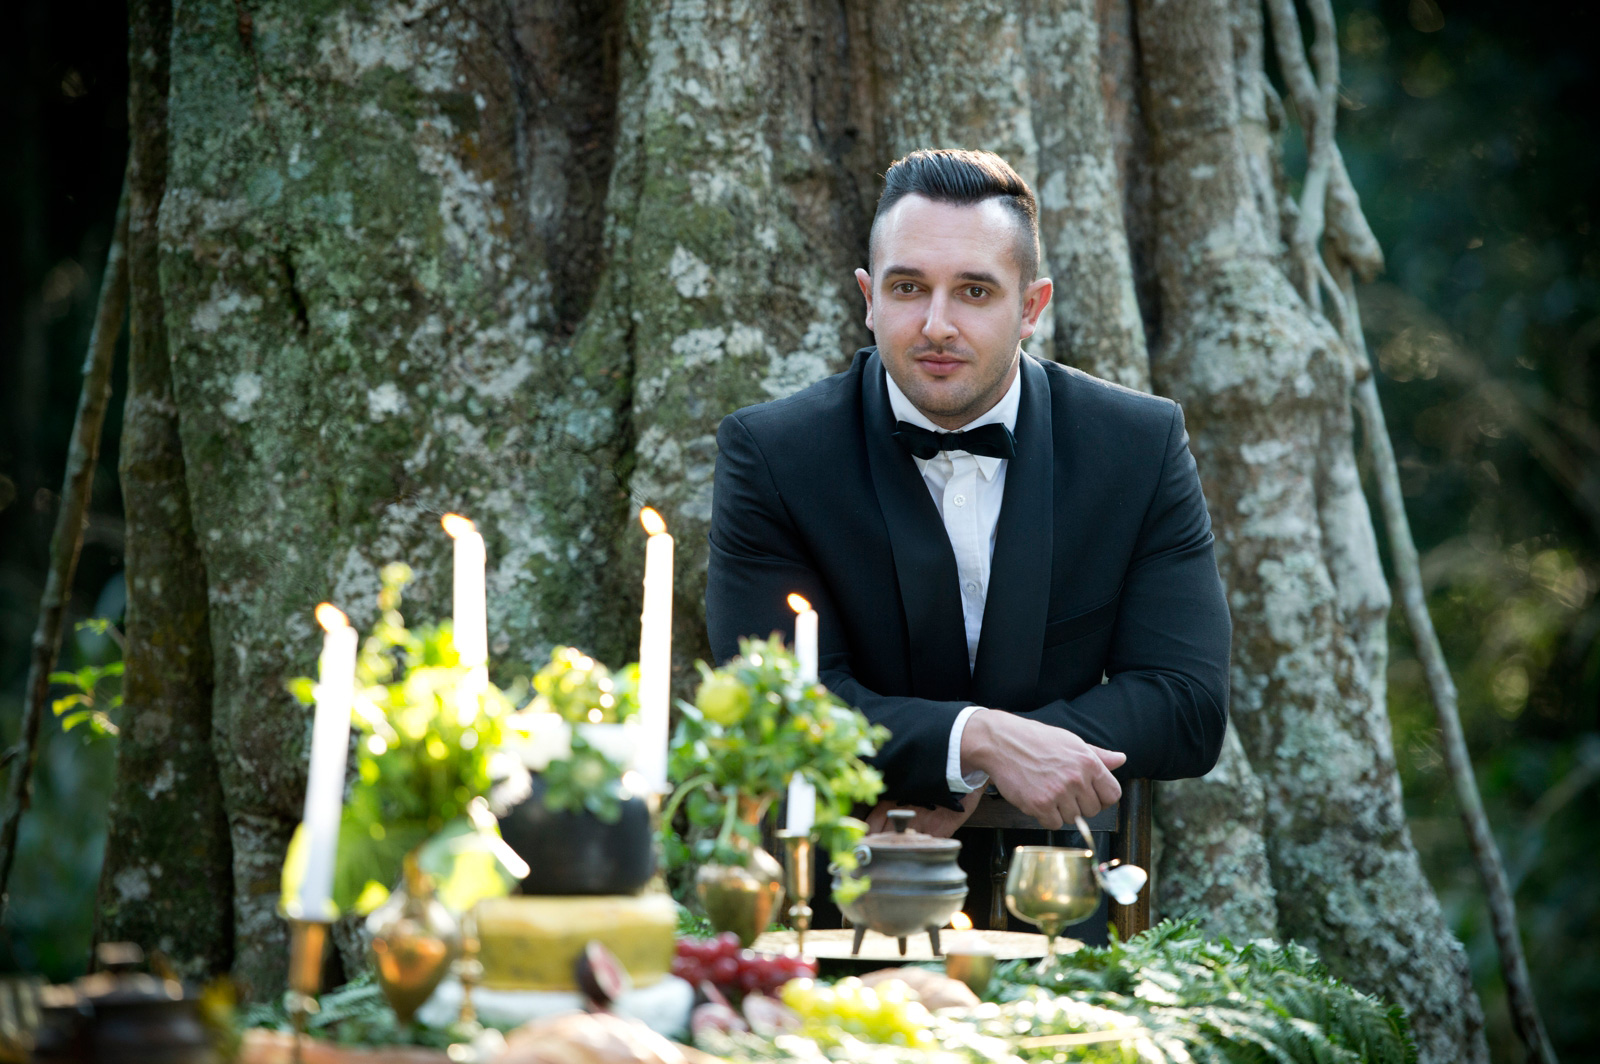 Groom with forrest themed wedding decor